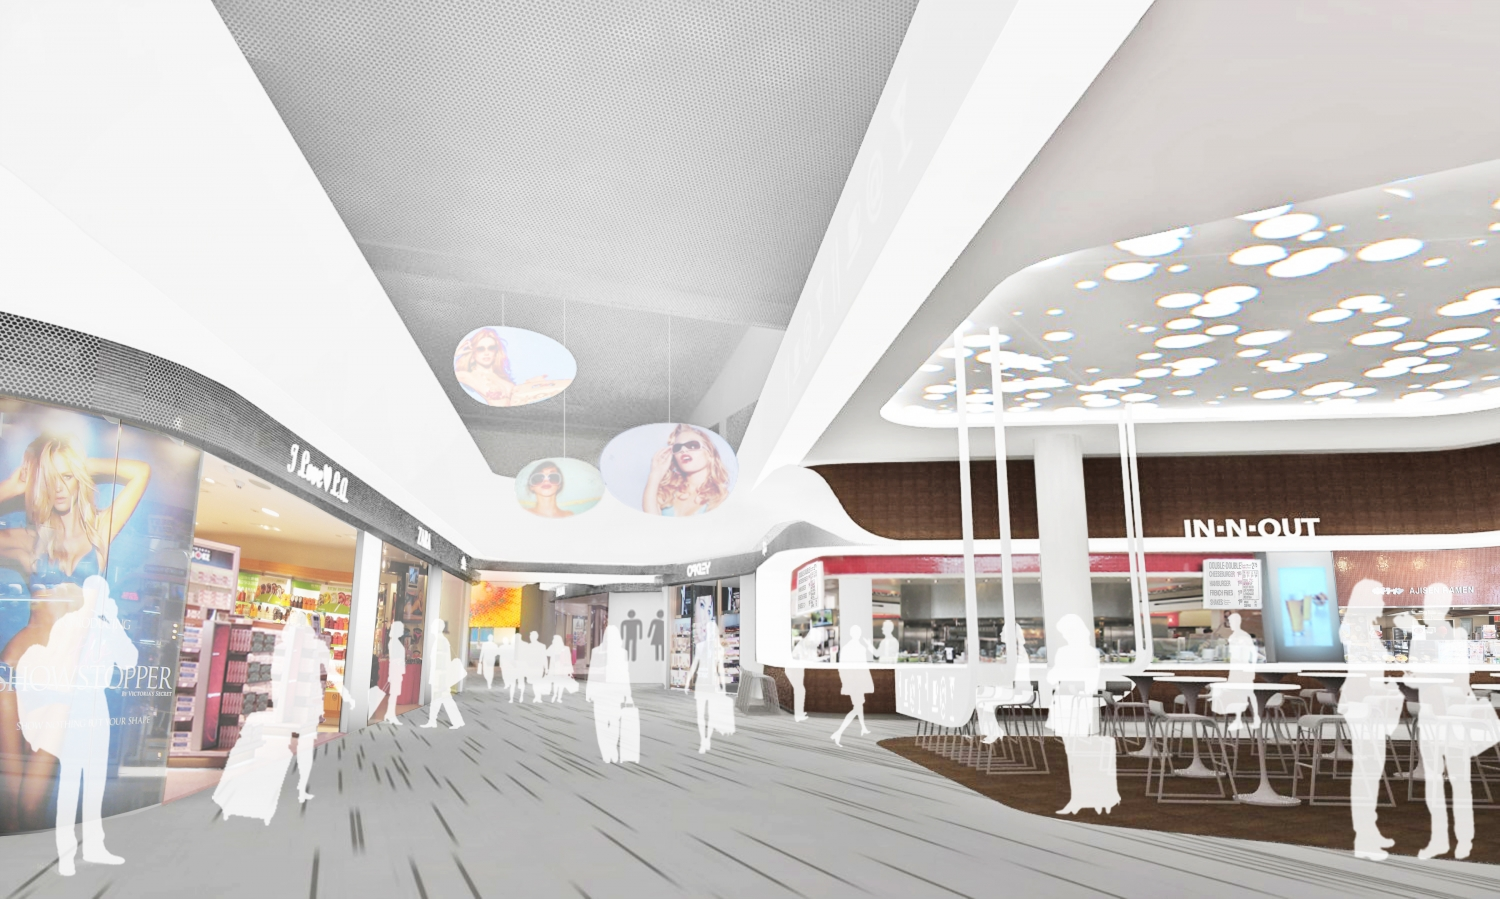 T2 At LAX Concept